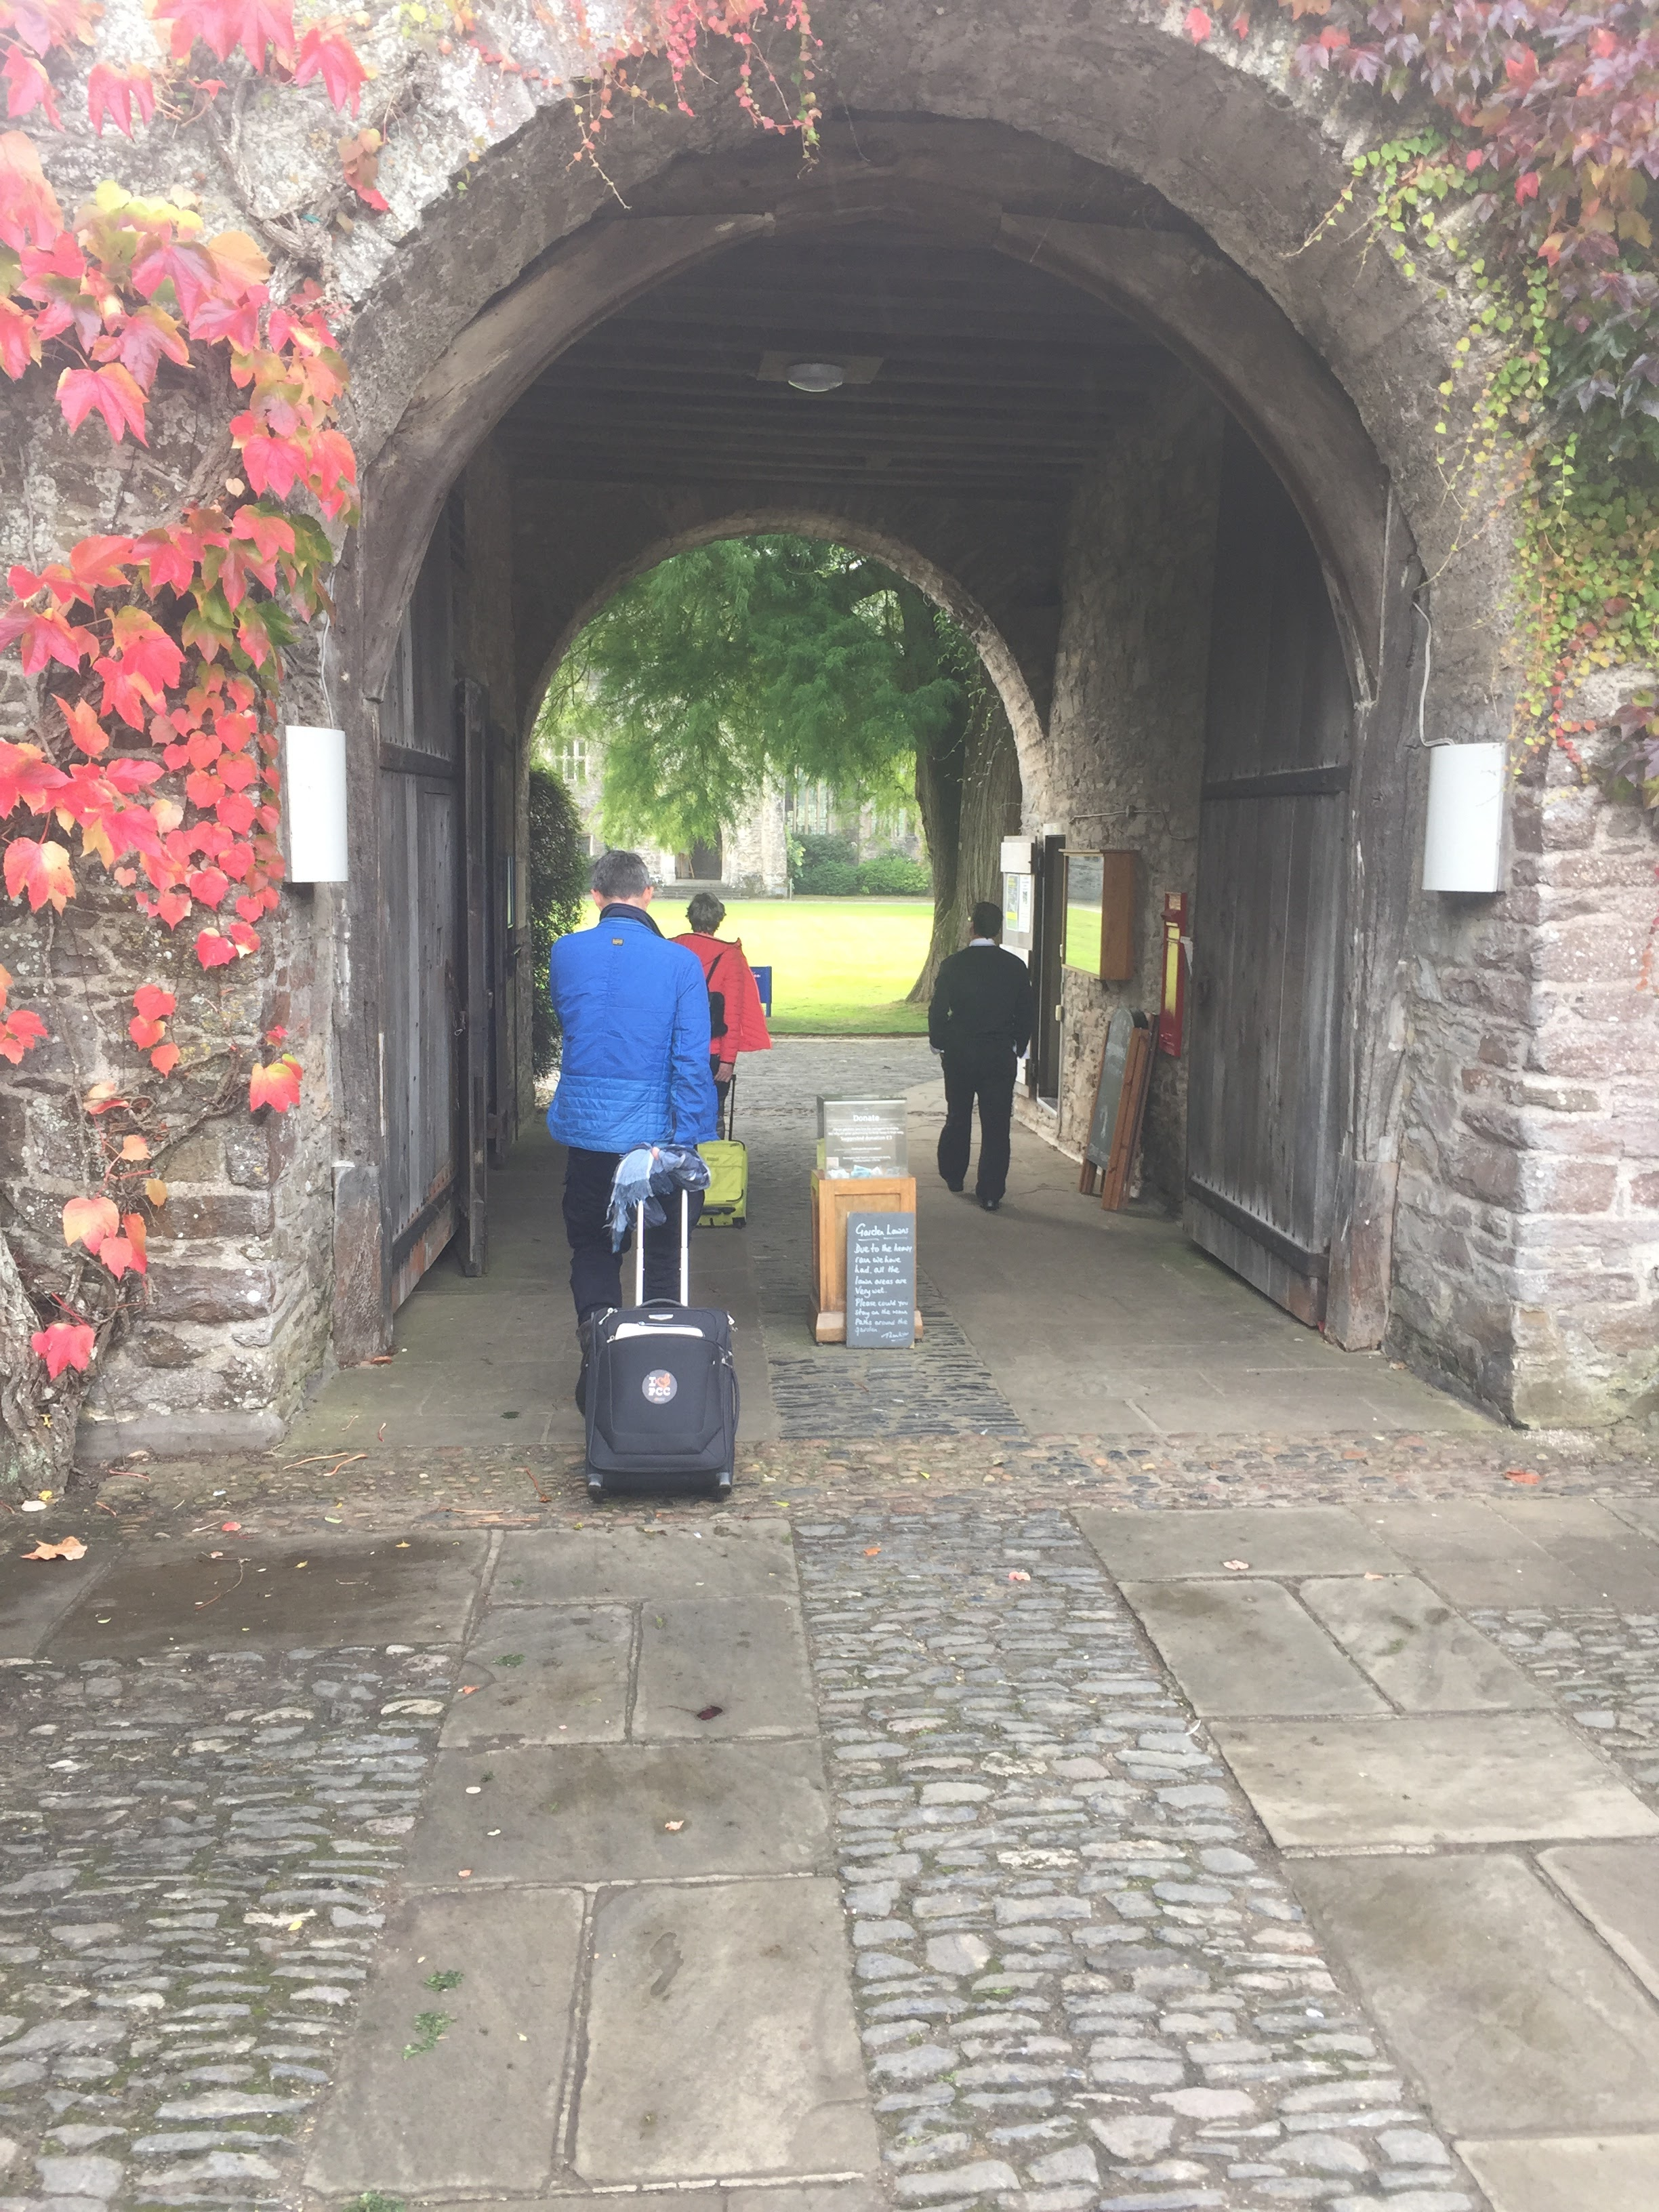 Arriving at Dartington Hall.